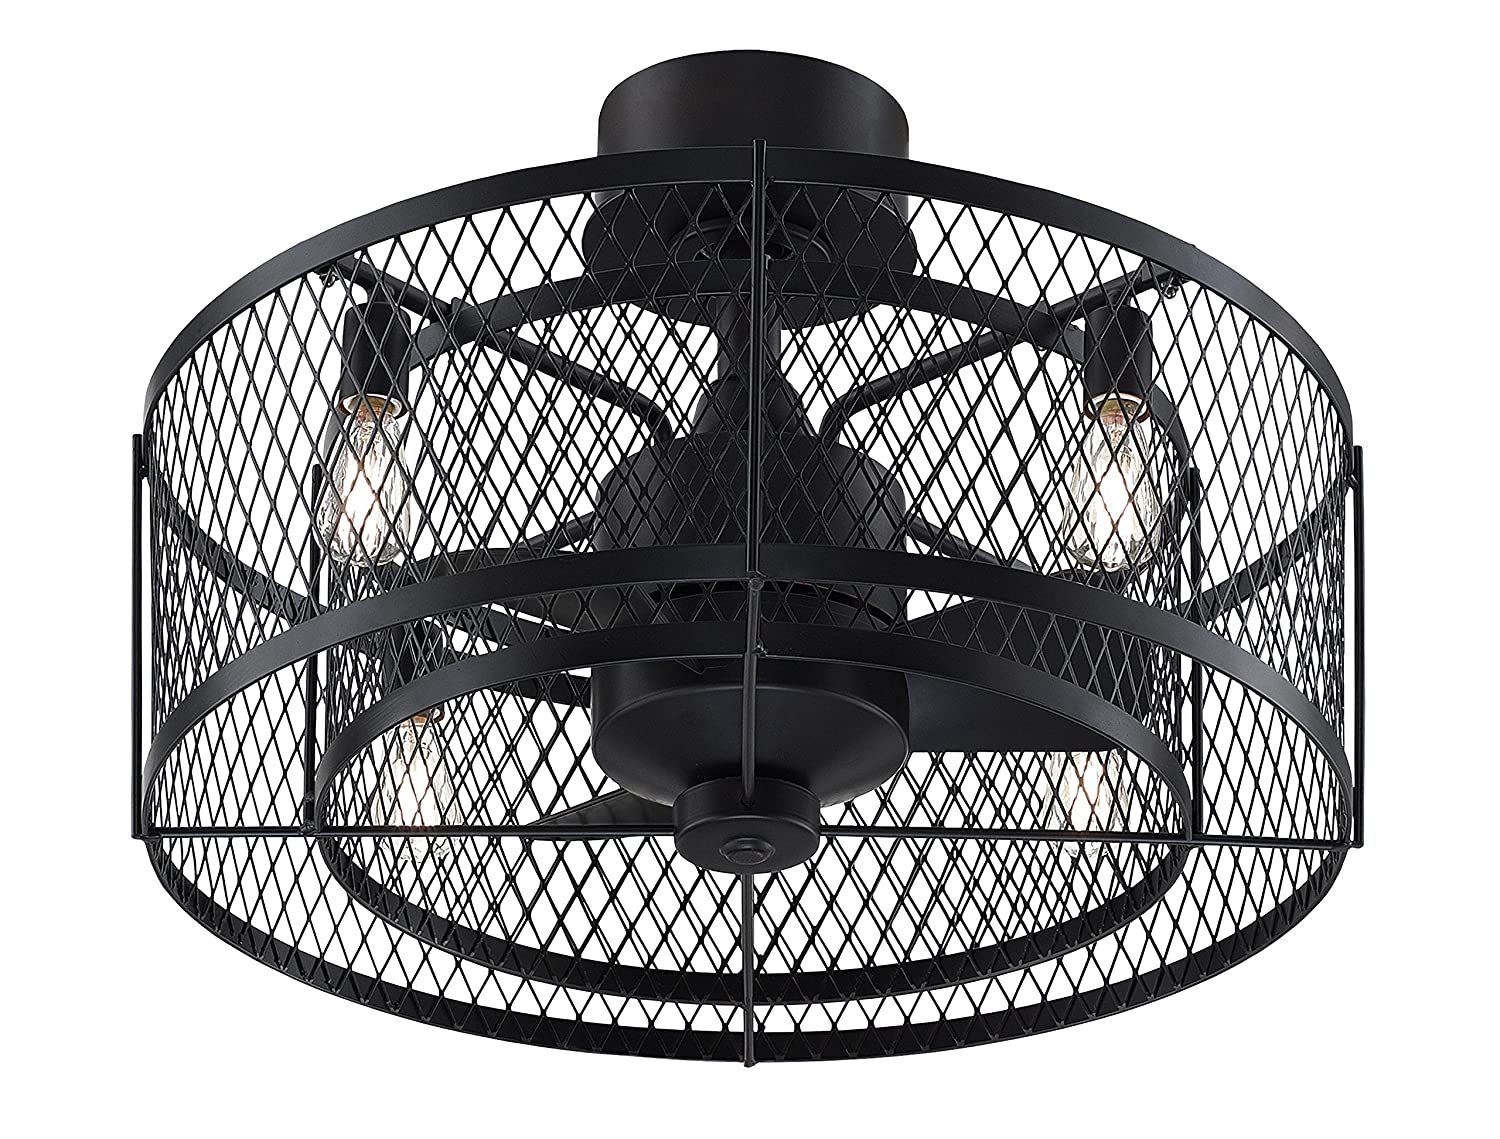 Fanimation Studio Collection LP8350LAZ Vintere Ceiling Fan - Aged Bronze with Vintage Light Kit